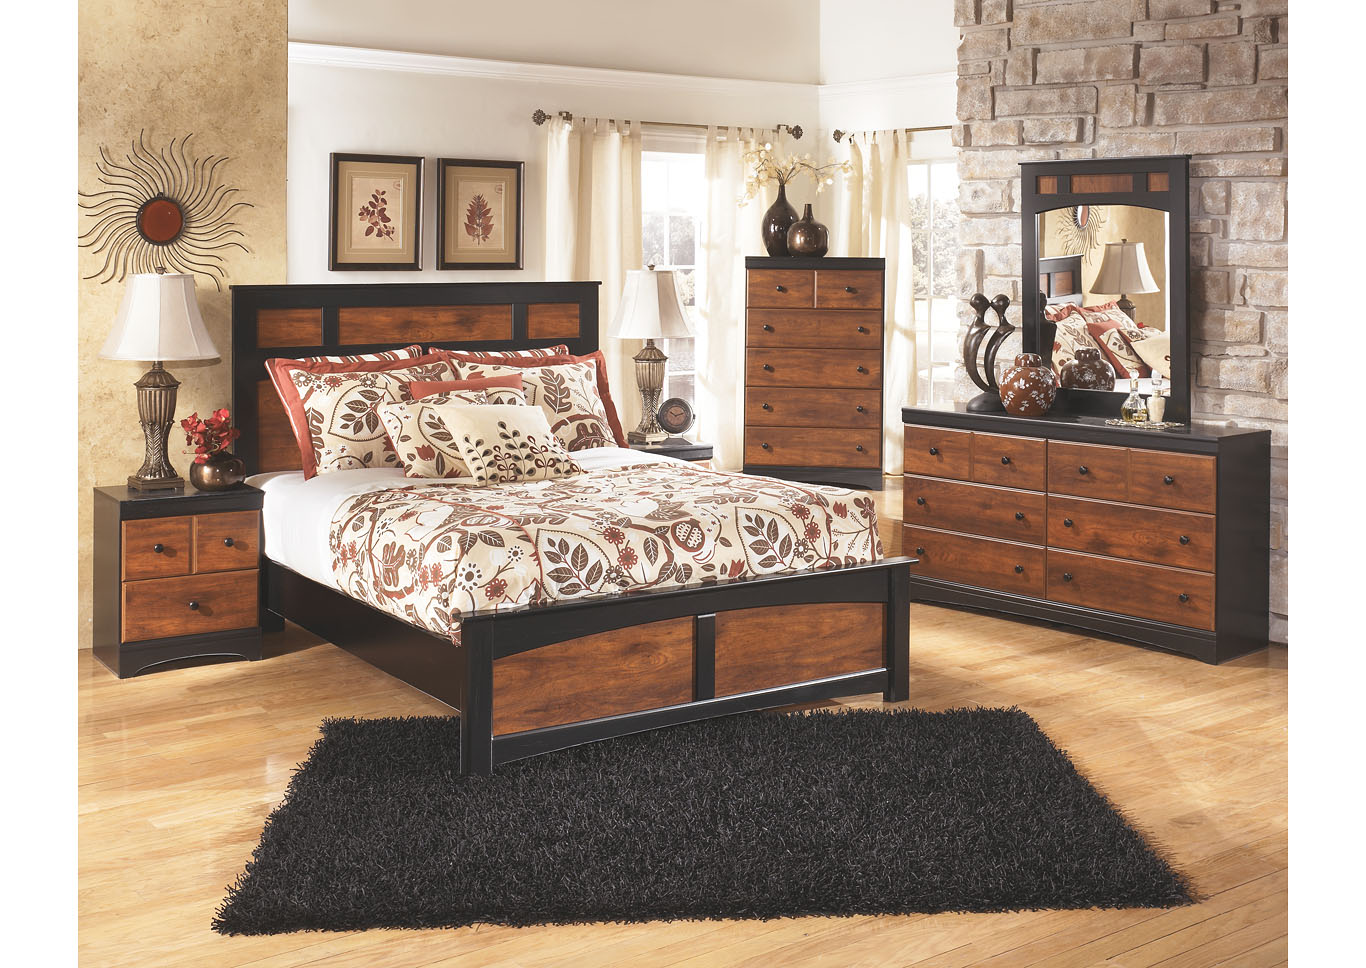 Aimwell Queen Panel Bed w/Dresser & Mirror,Signature Design By Ashley